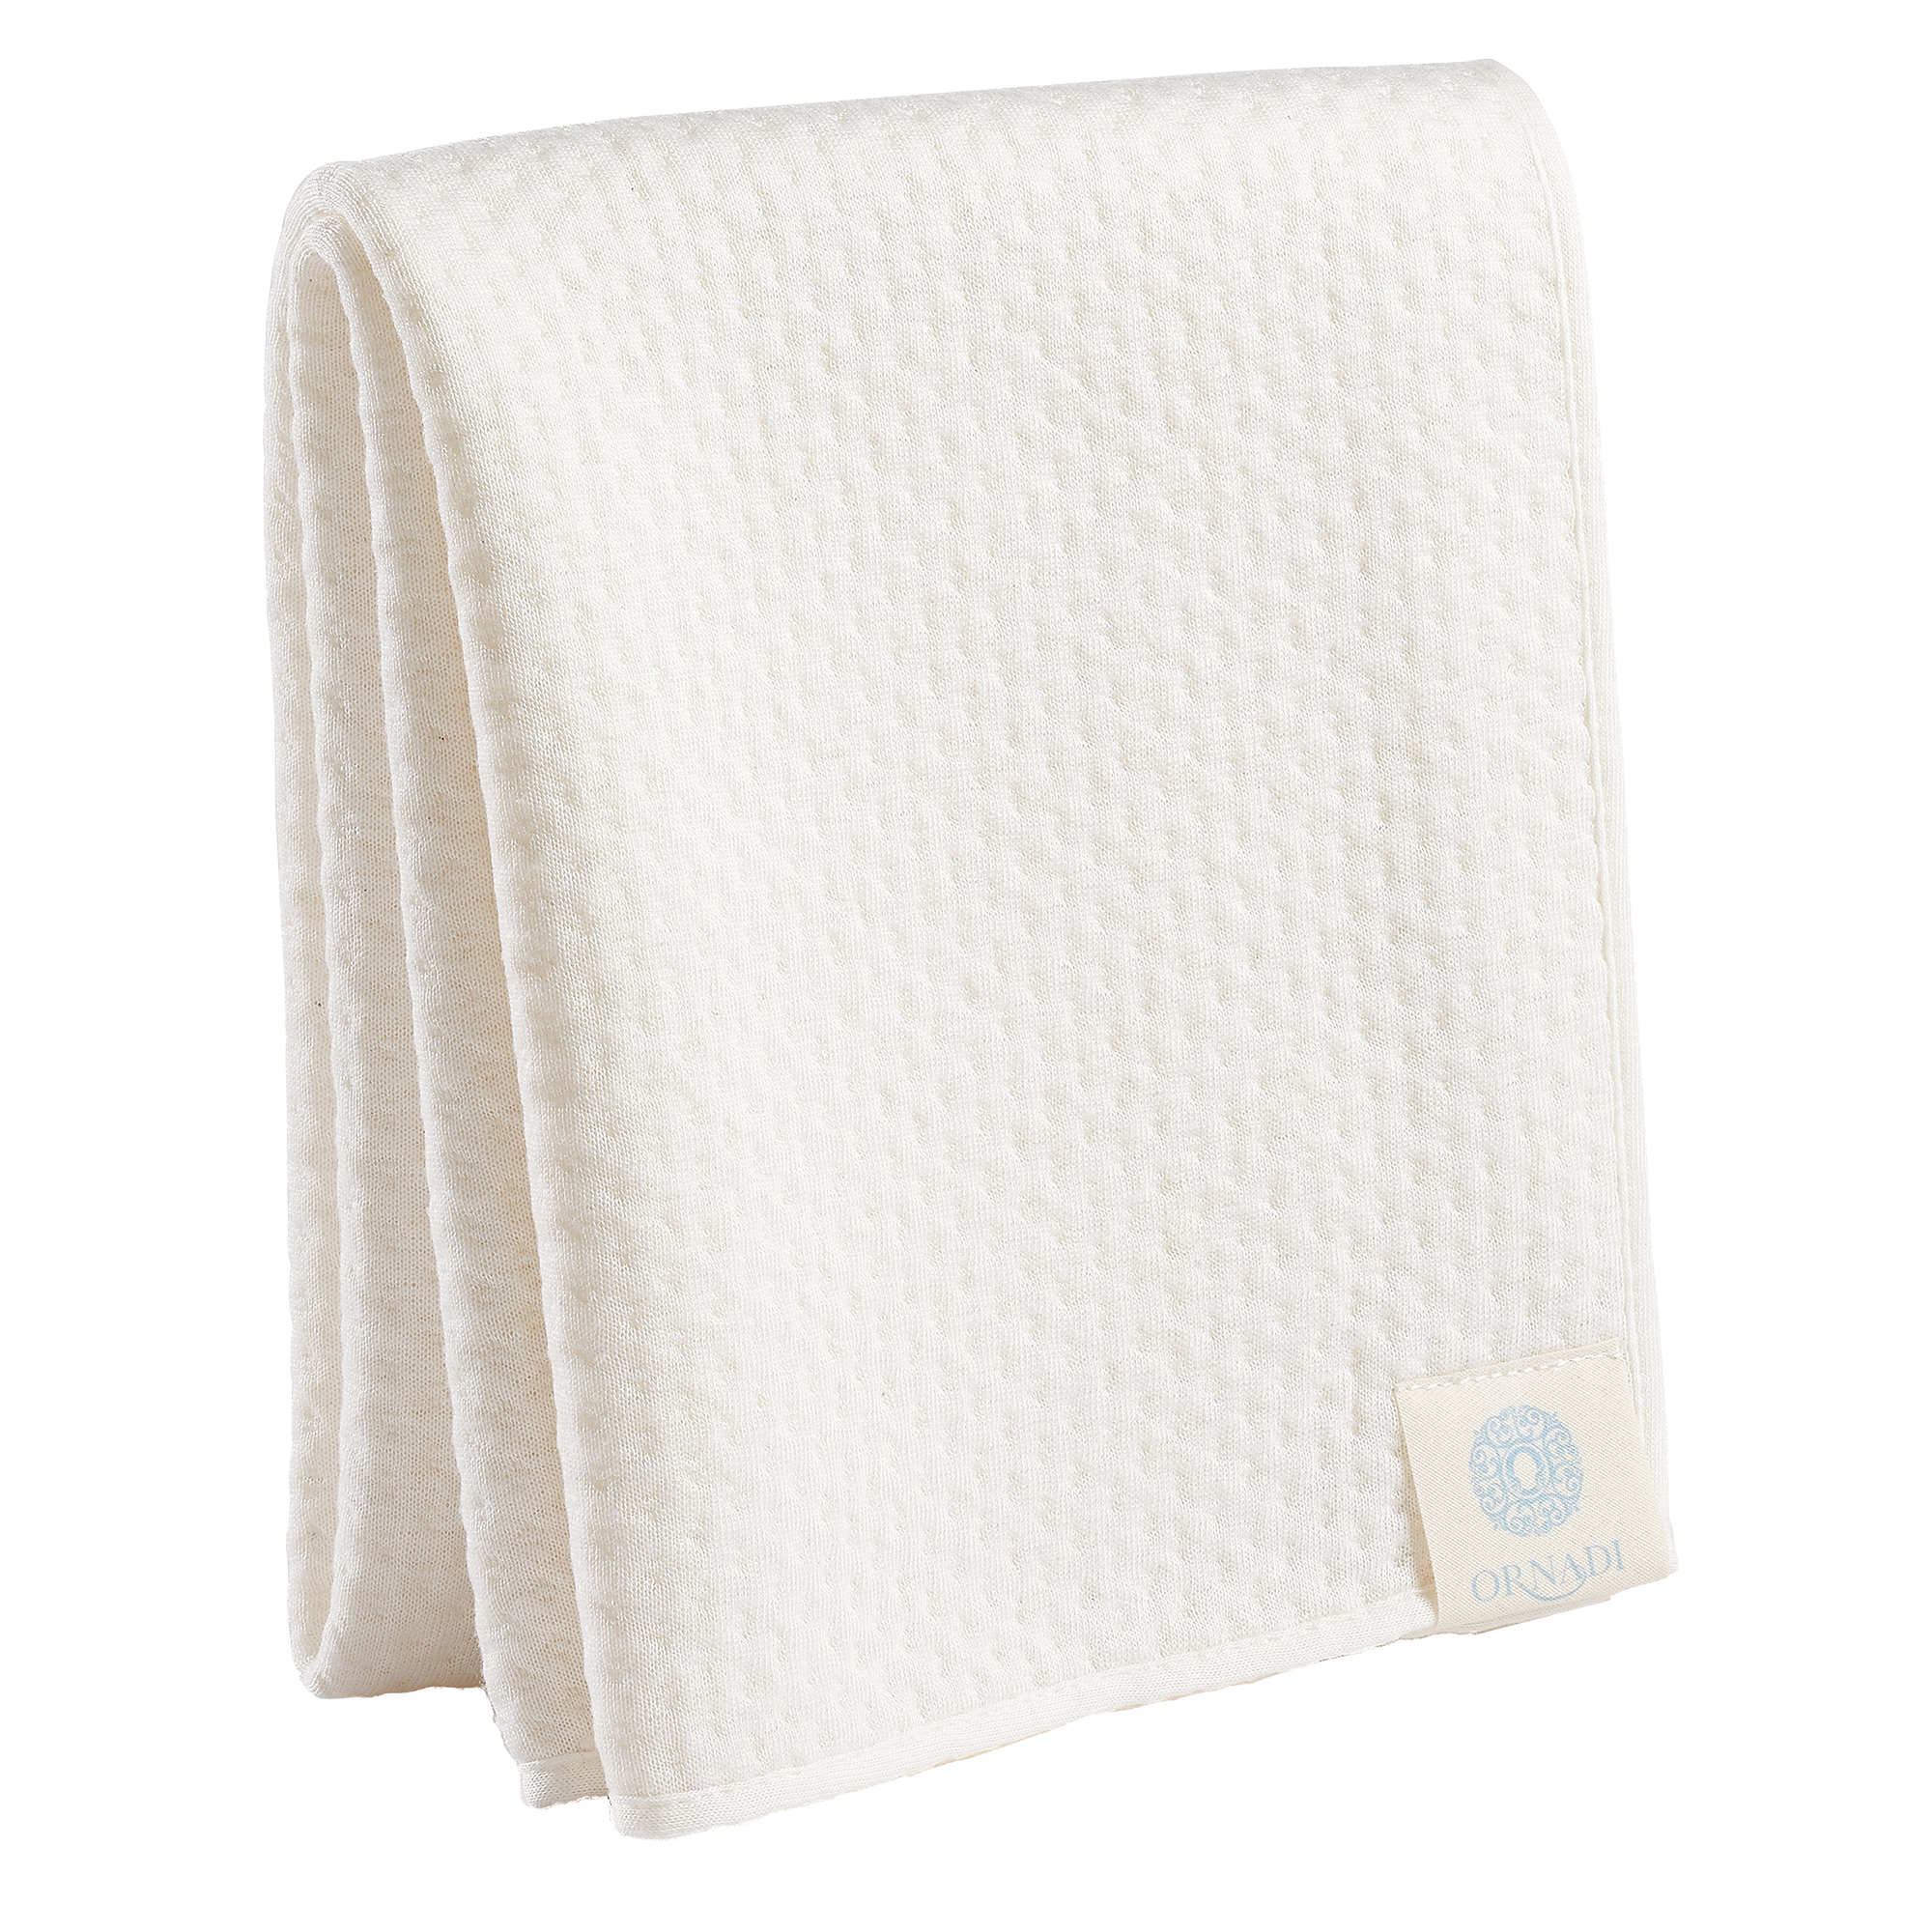 Towel PNG images free download.